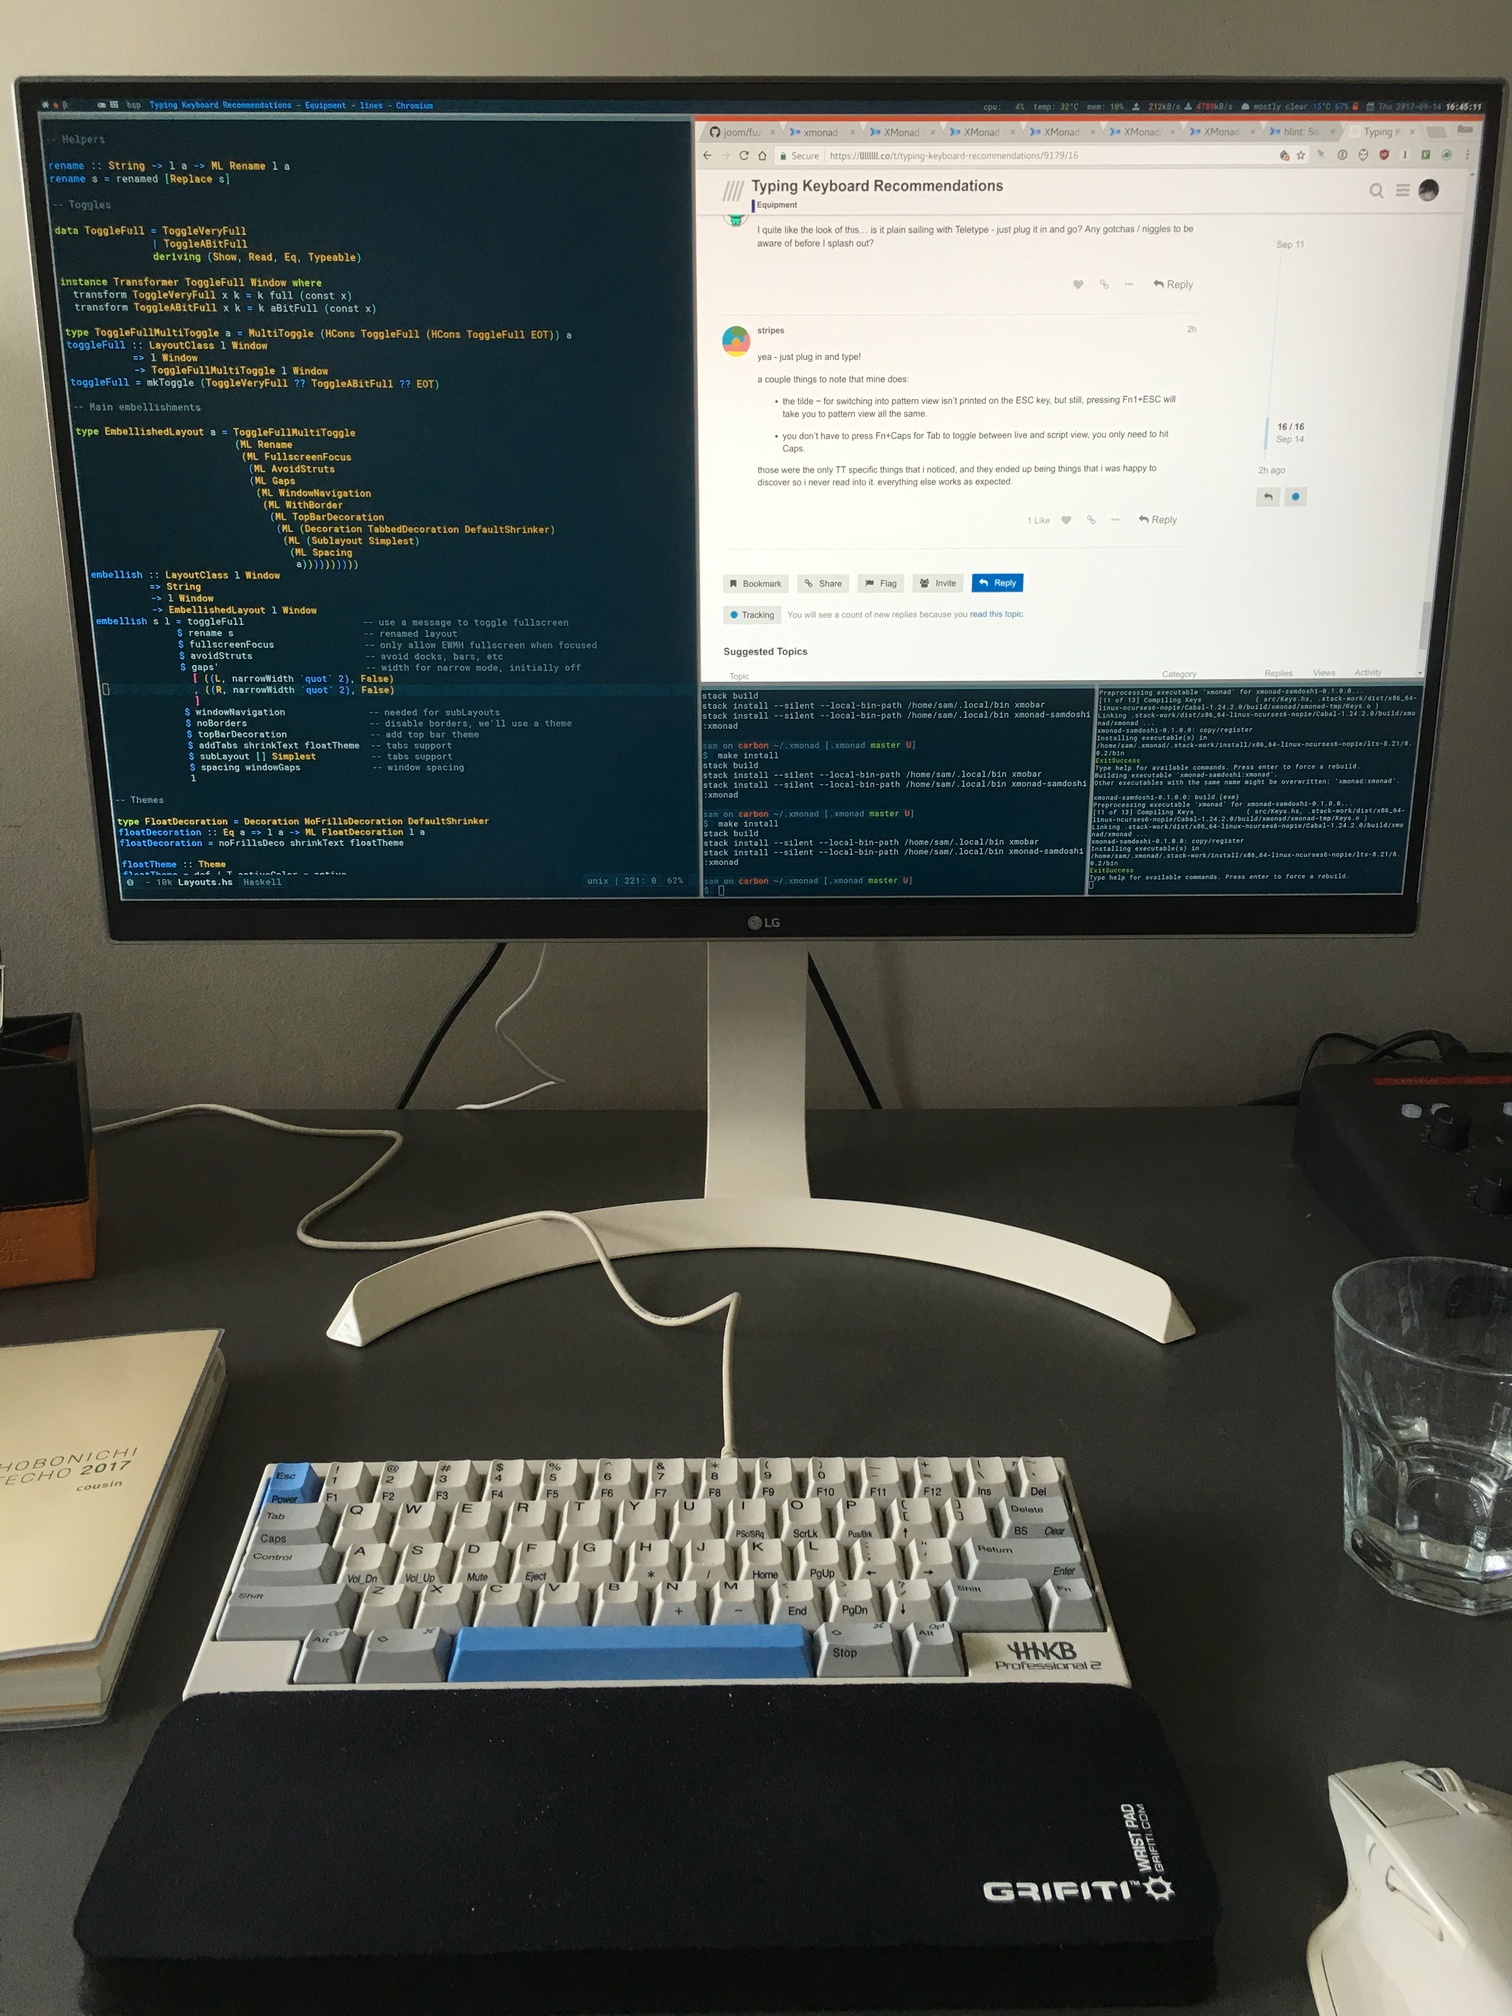 Typing Keyboard Recommendations Equipment Lines